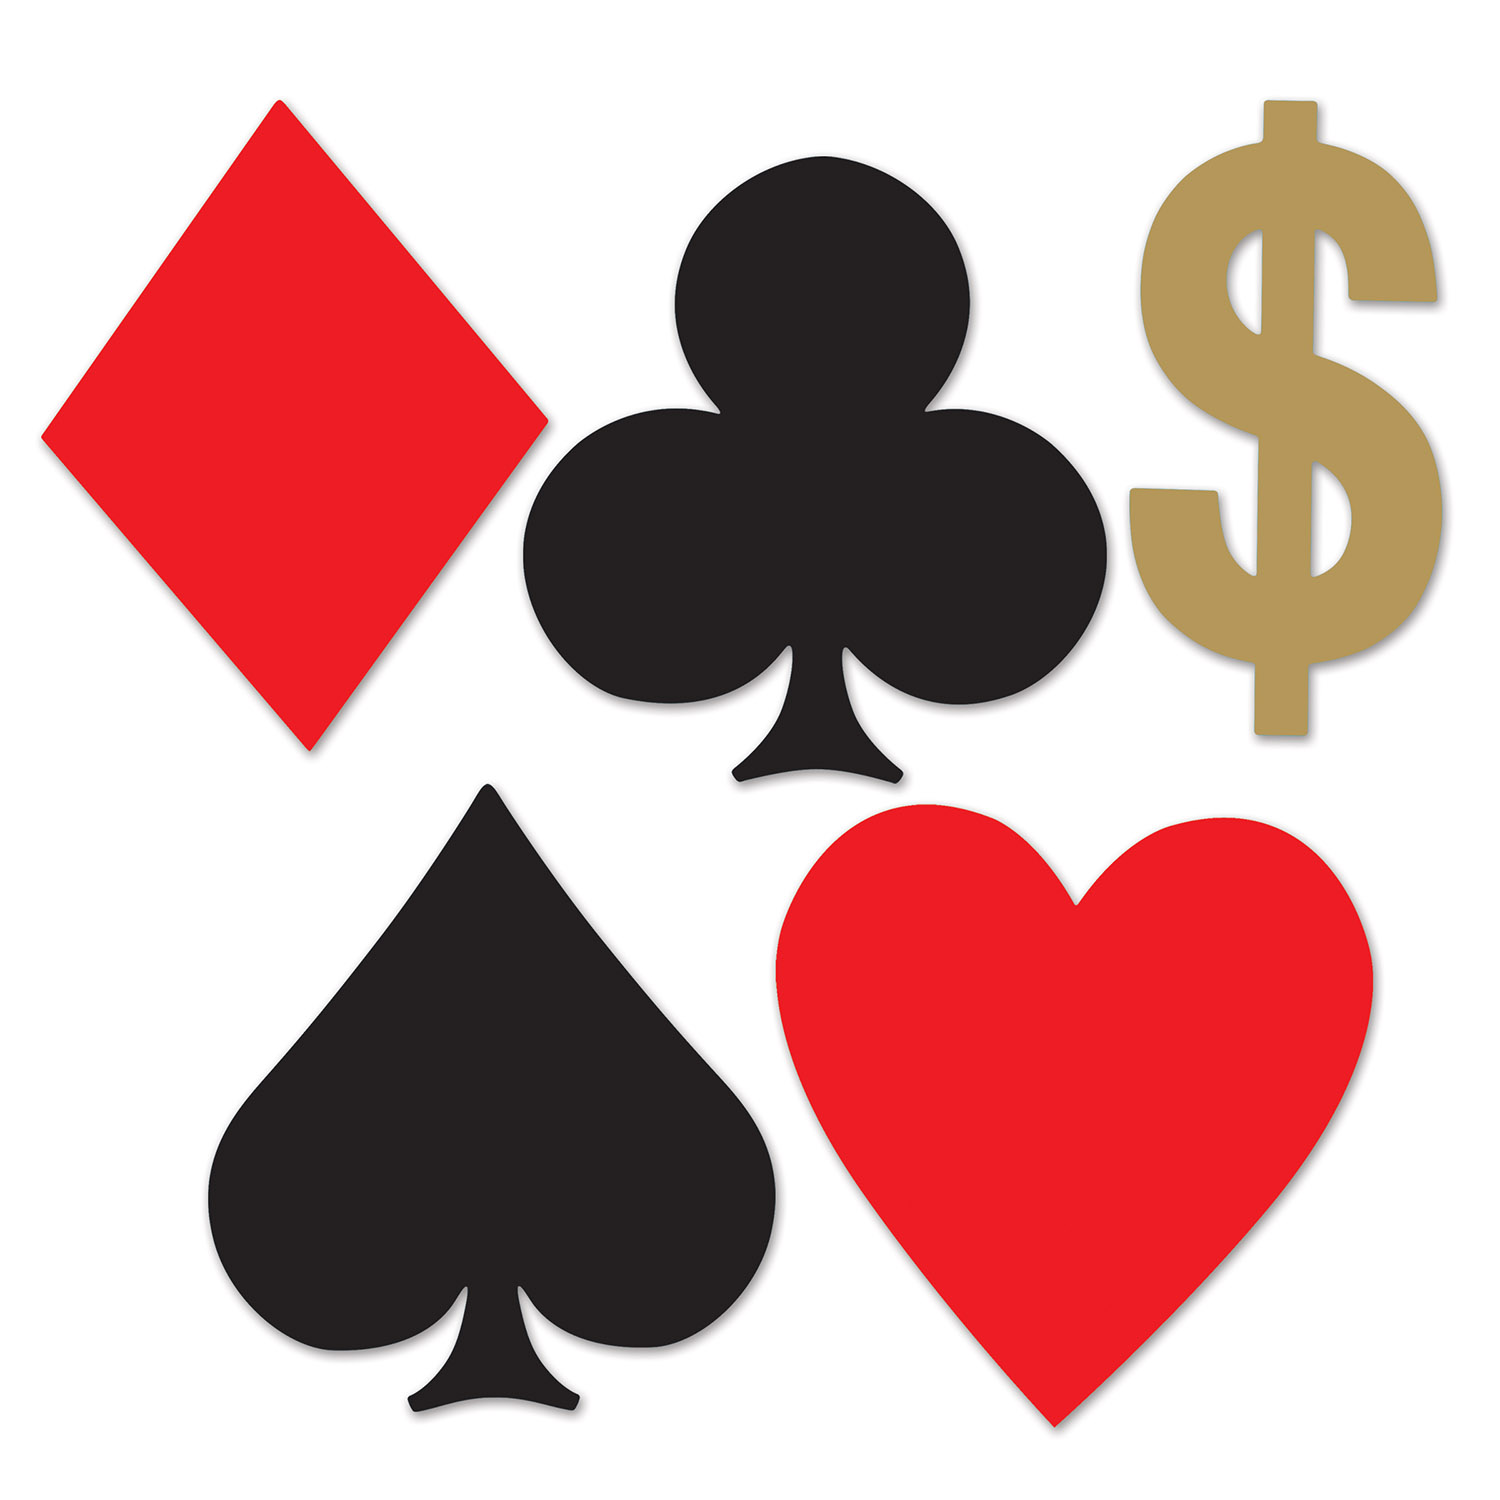 cutout in the shape and colors of playing card suits